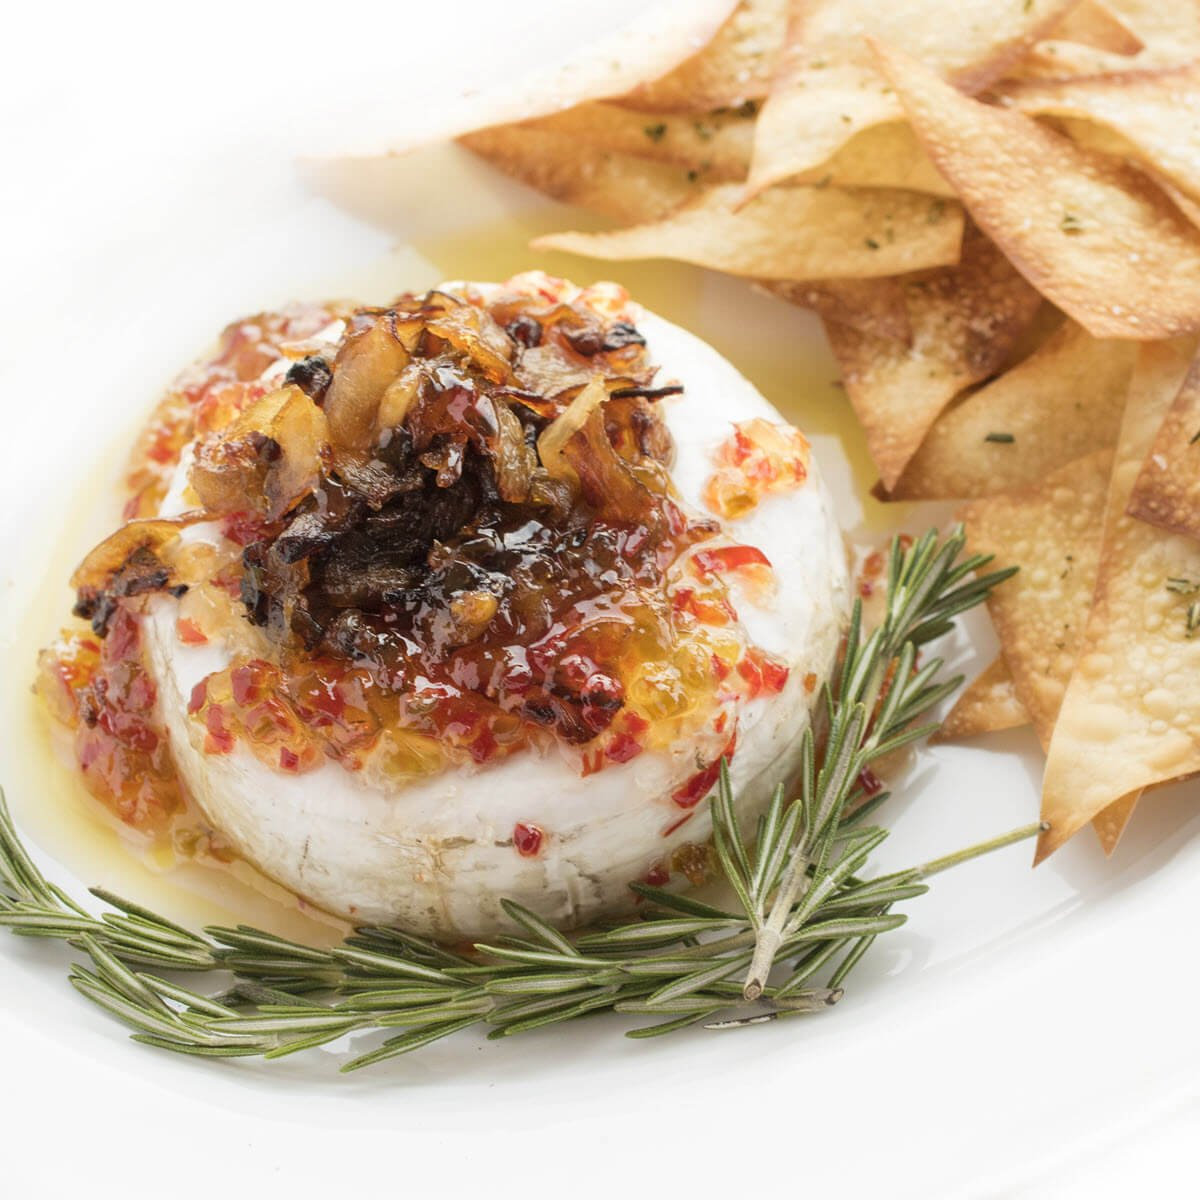 Baked Brie with Rosemary Wonton Crisps - a fast appetizer recipe